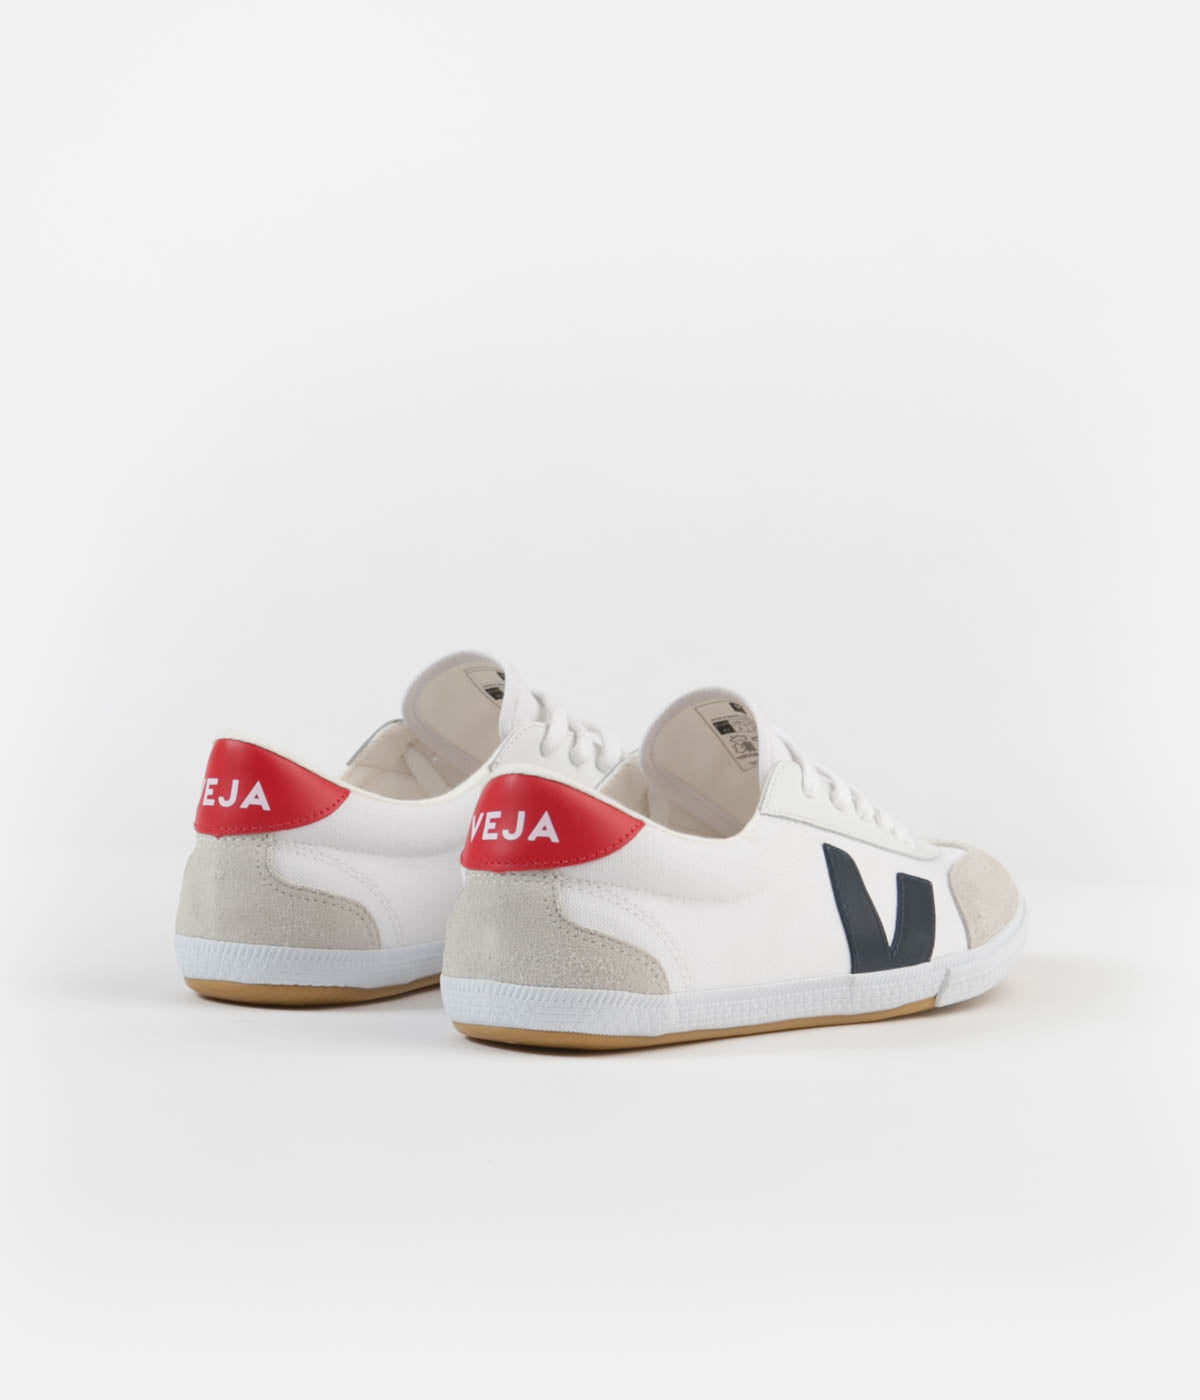 Veja Volley Canvas Shoes - White